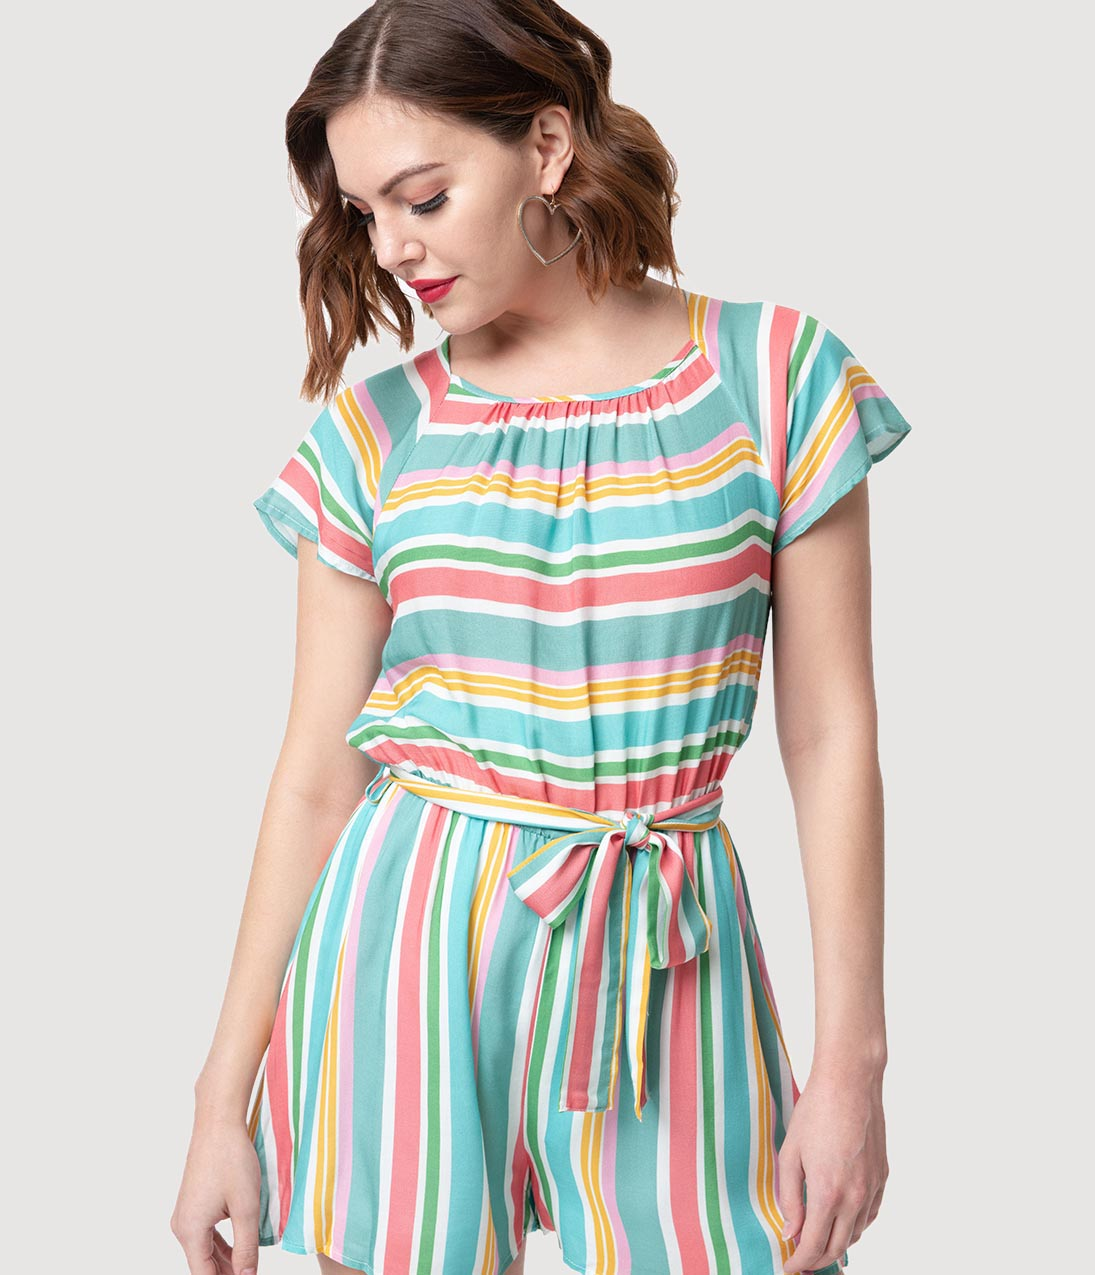 40s-50s Vintage Playsuits, Jumpsuits, Rompers History Smak Parlour Retro Style Multicolor Pastel Striped French Girl Cool Romper $50.00 AT vintagedancer.com